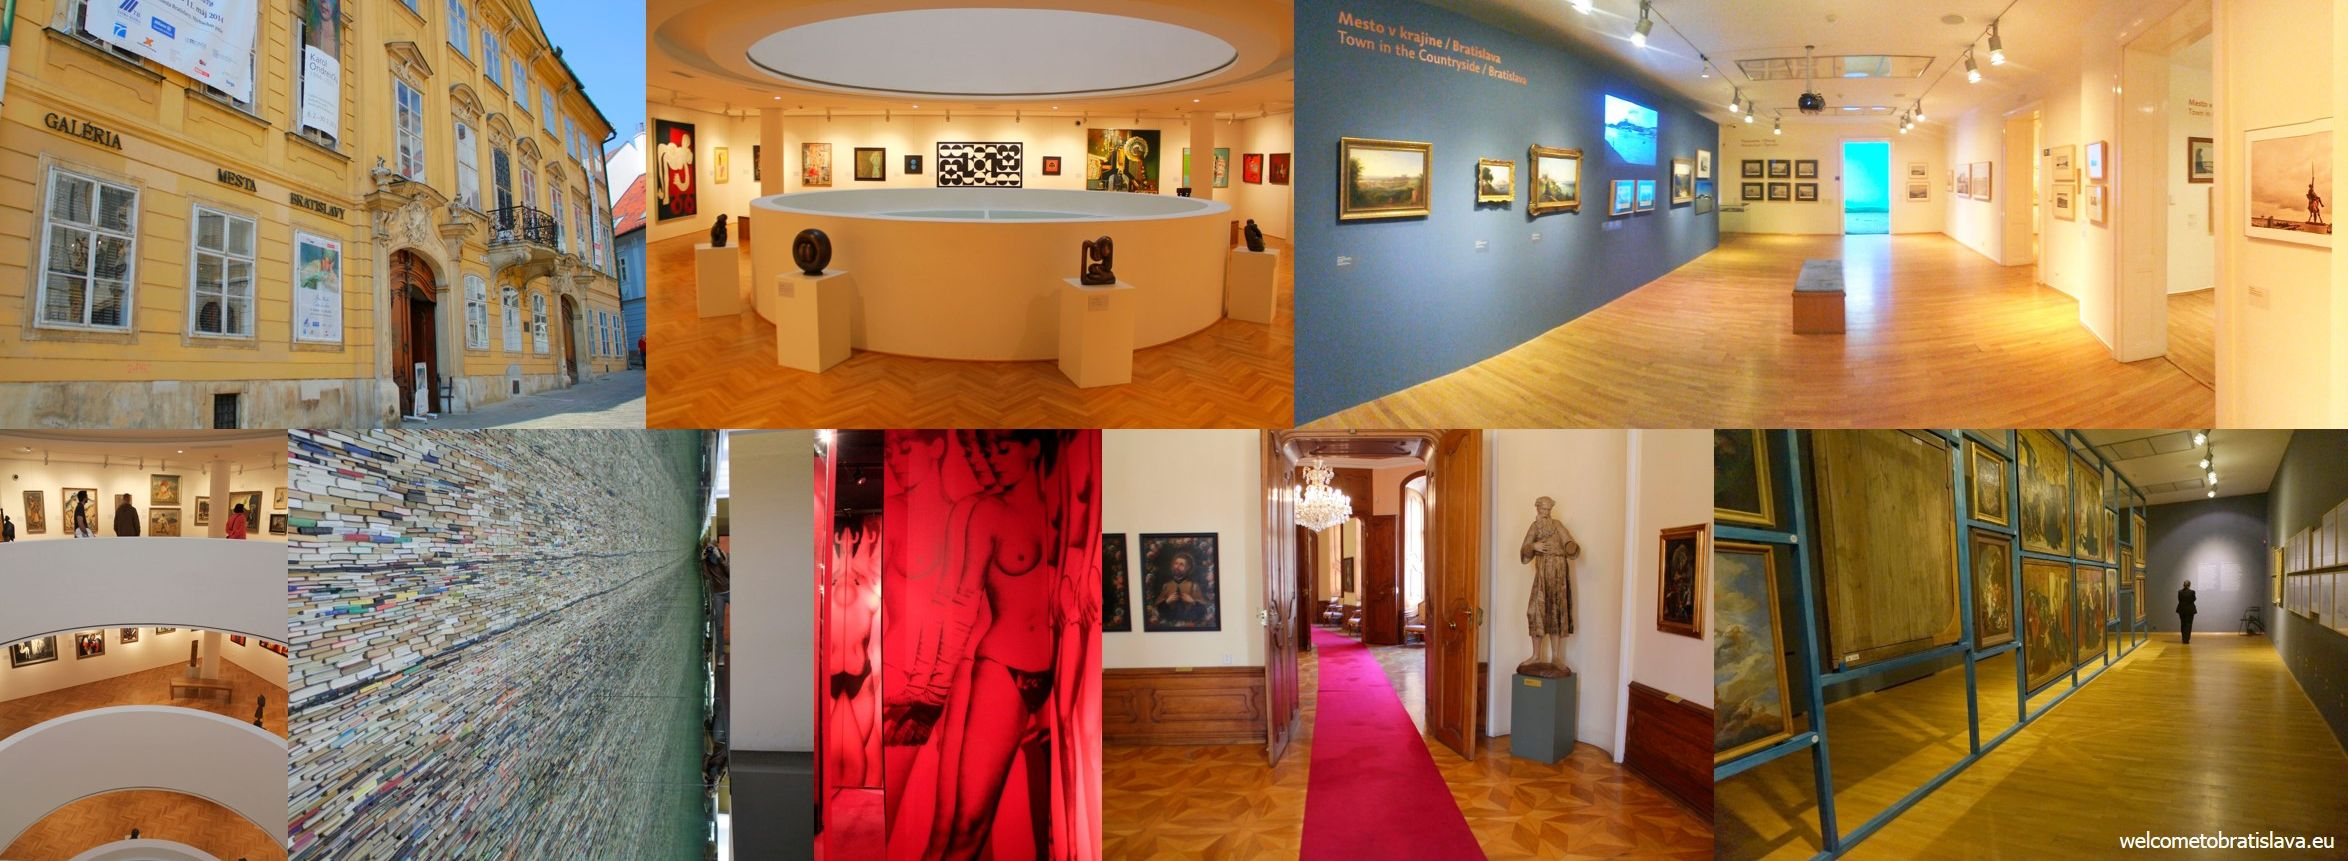 Sightseeing in Bratislava: galleries